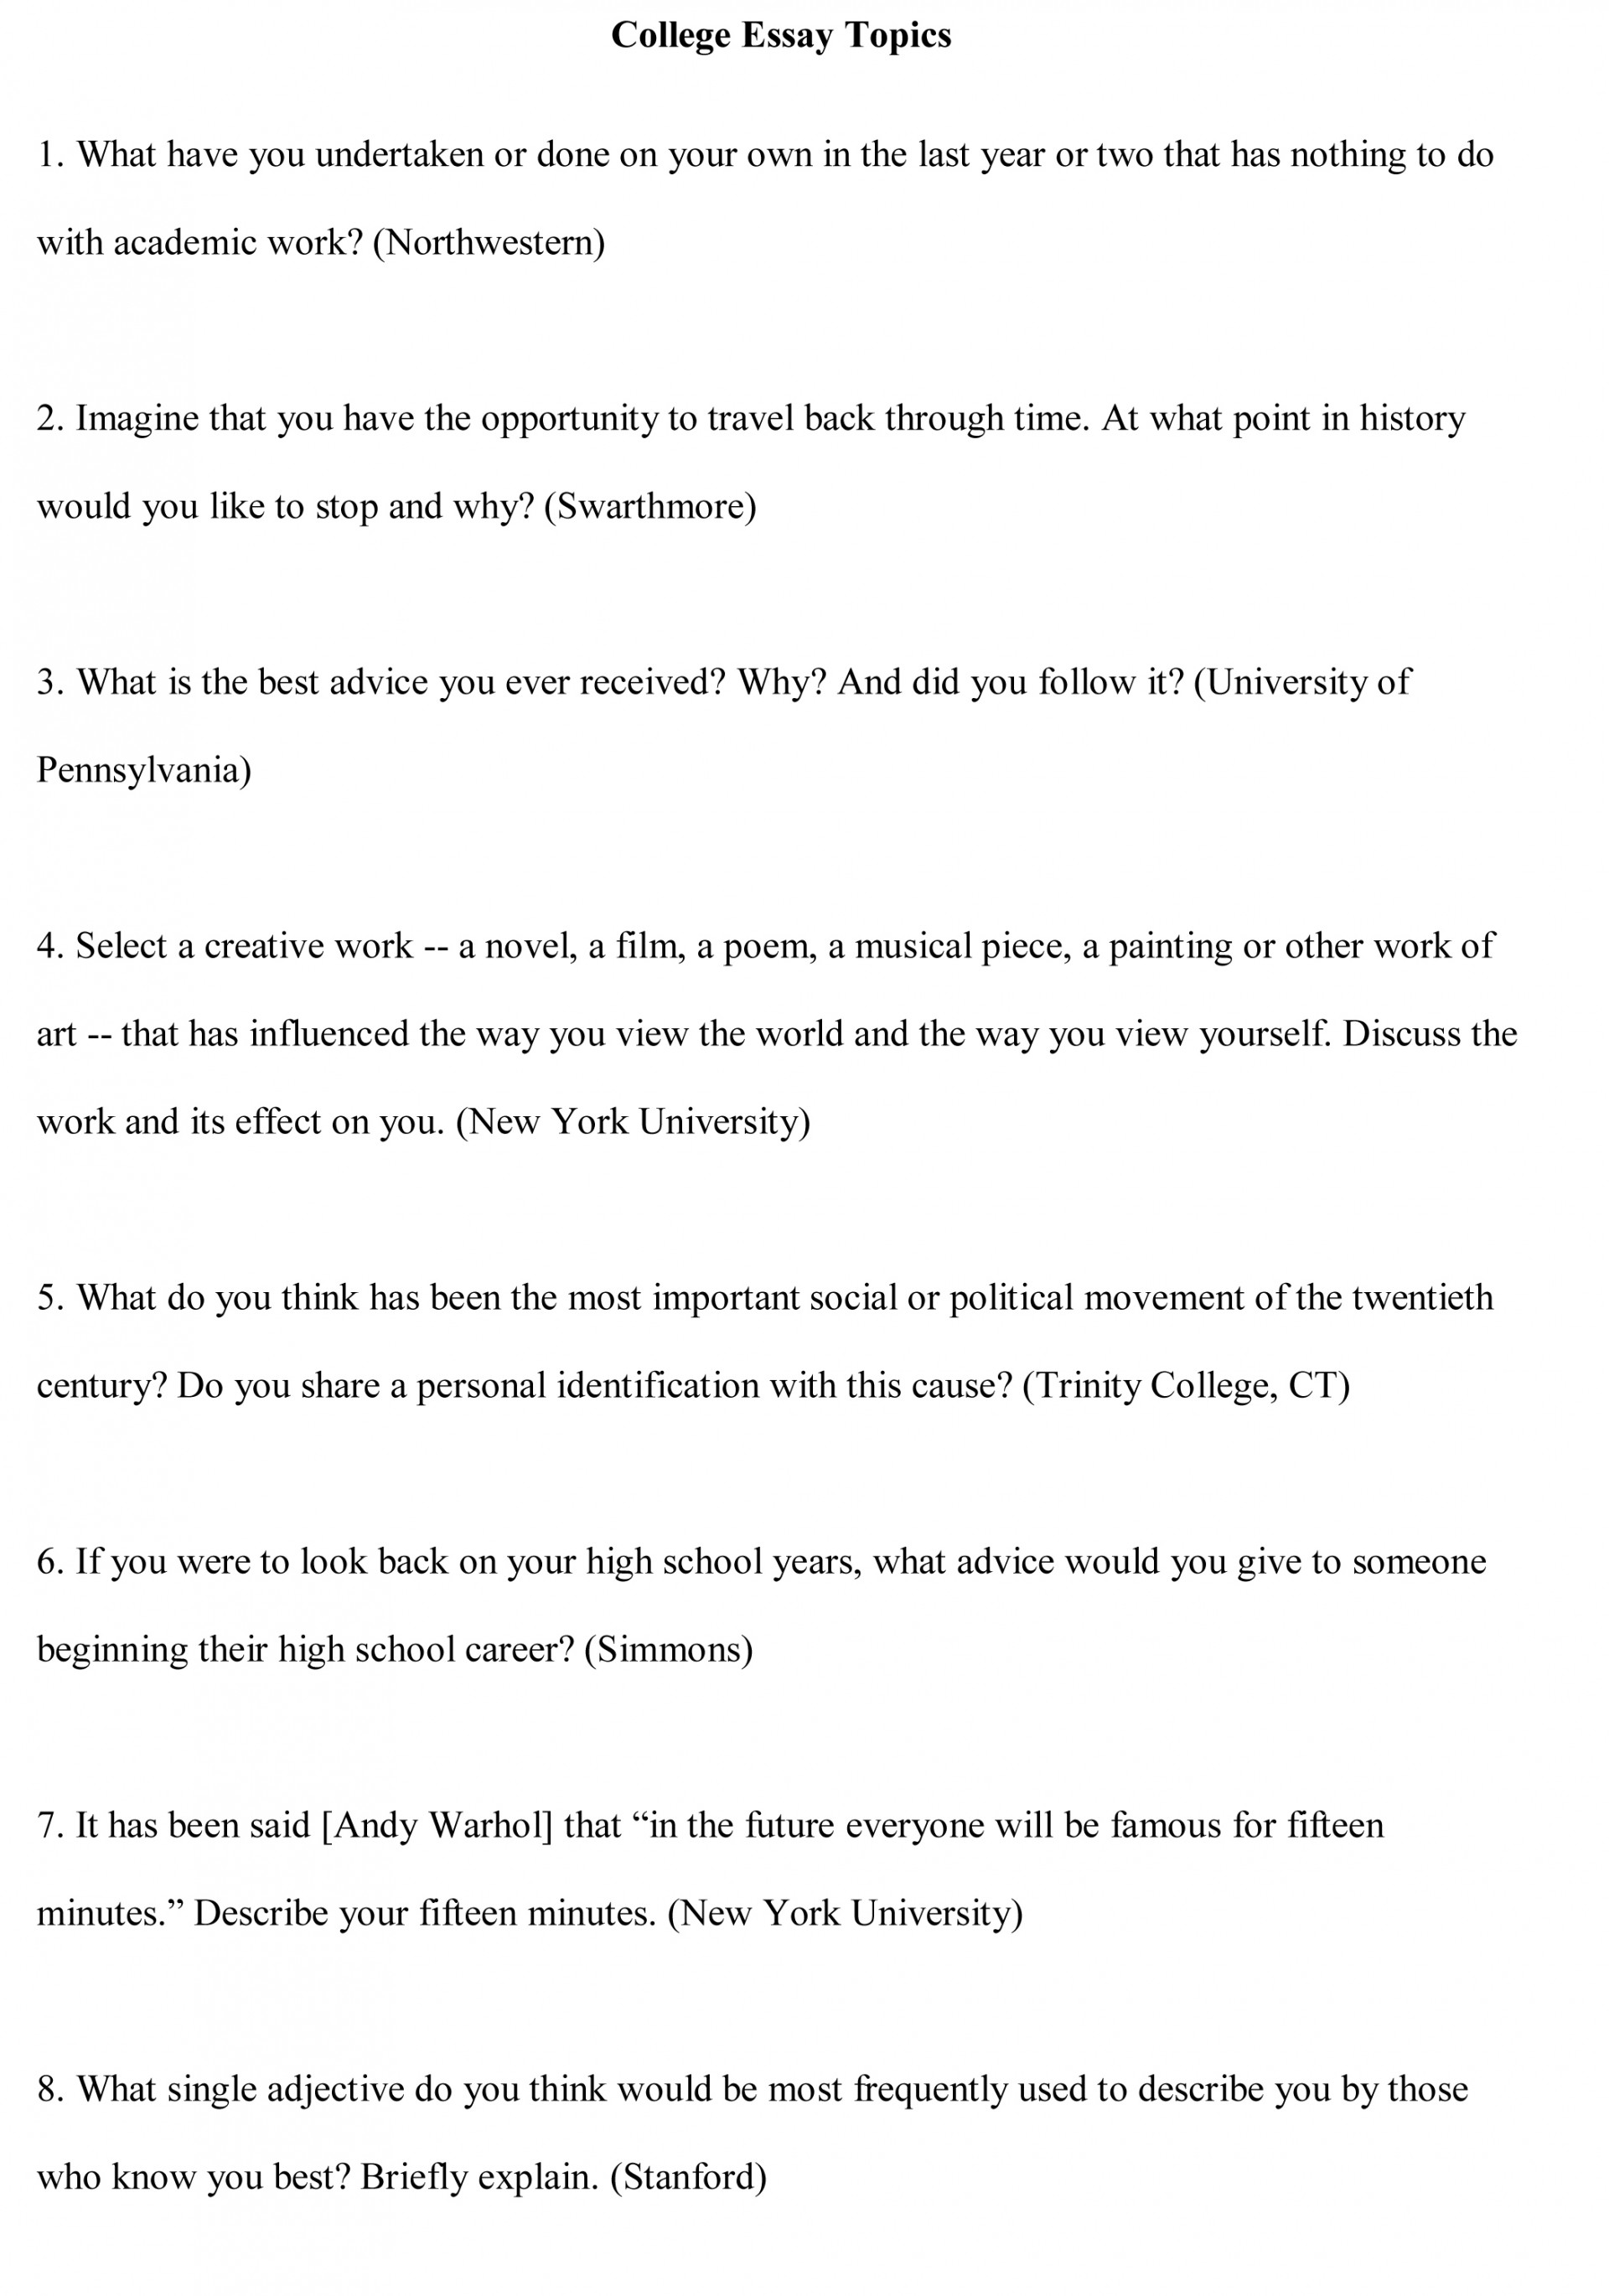 008 Essay Example College Topics Free Sample1 How To Excellent Essays For 4th Grade Write Scholarships 1920